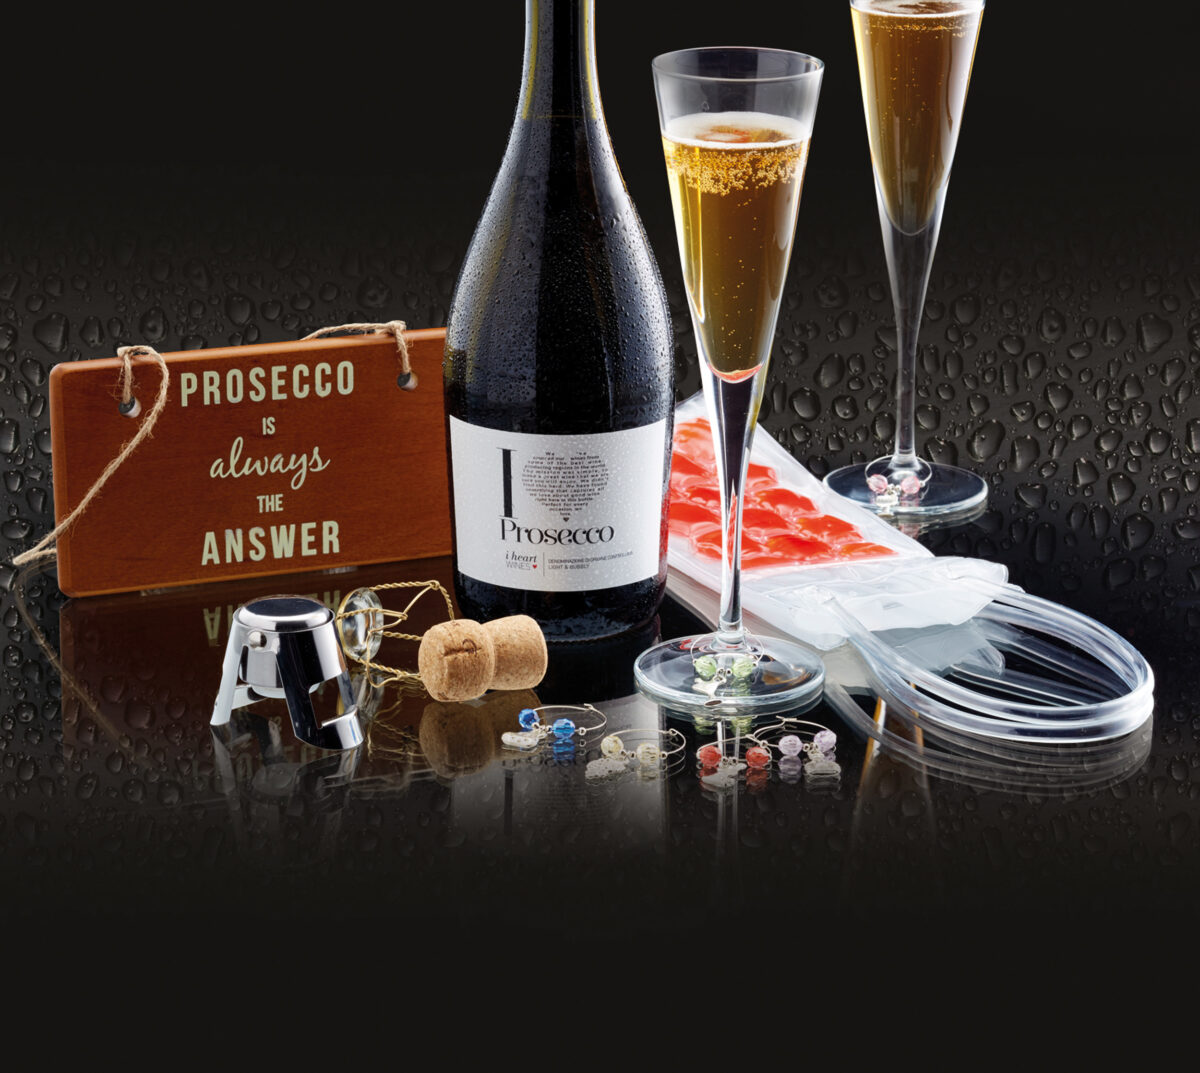 Barcraft Nine Piece Prosecco Gift Set Home & Garden Kitchen, Dining & Bar